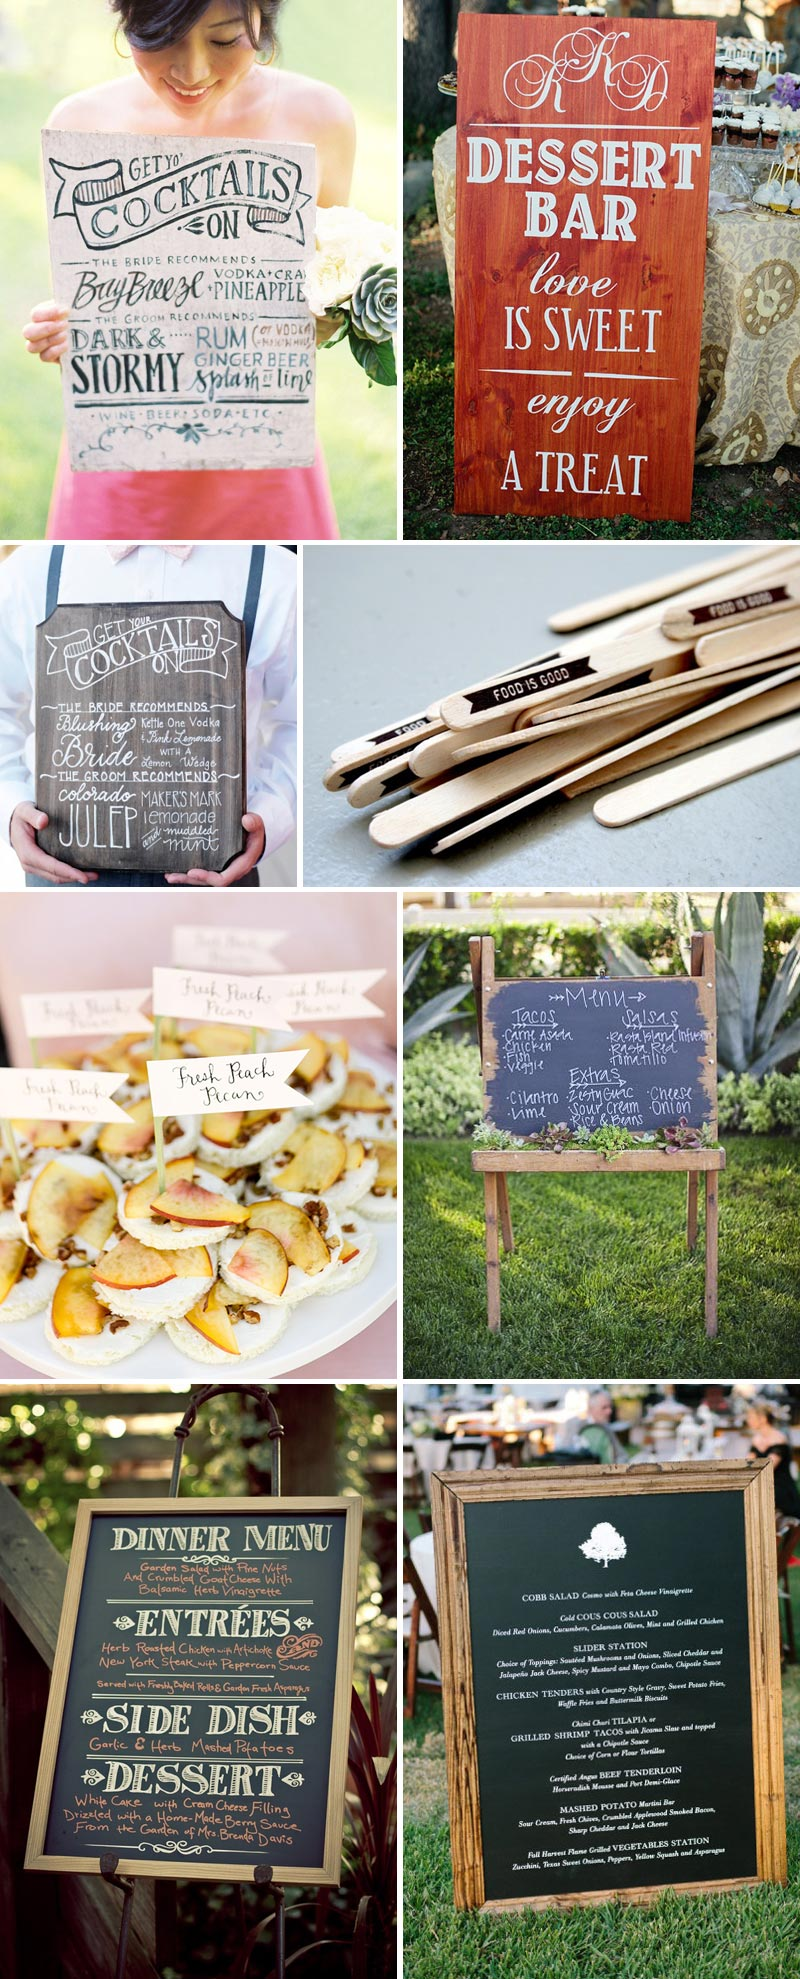 Looks-Good-Enough-To-Eat Wedding Menu Large Sign Inspiration